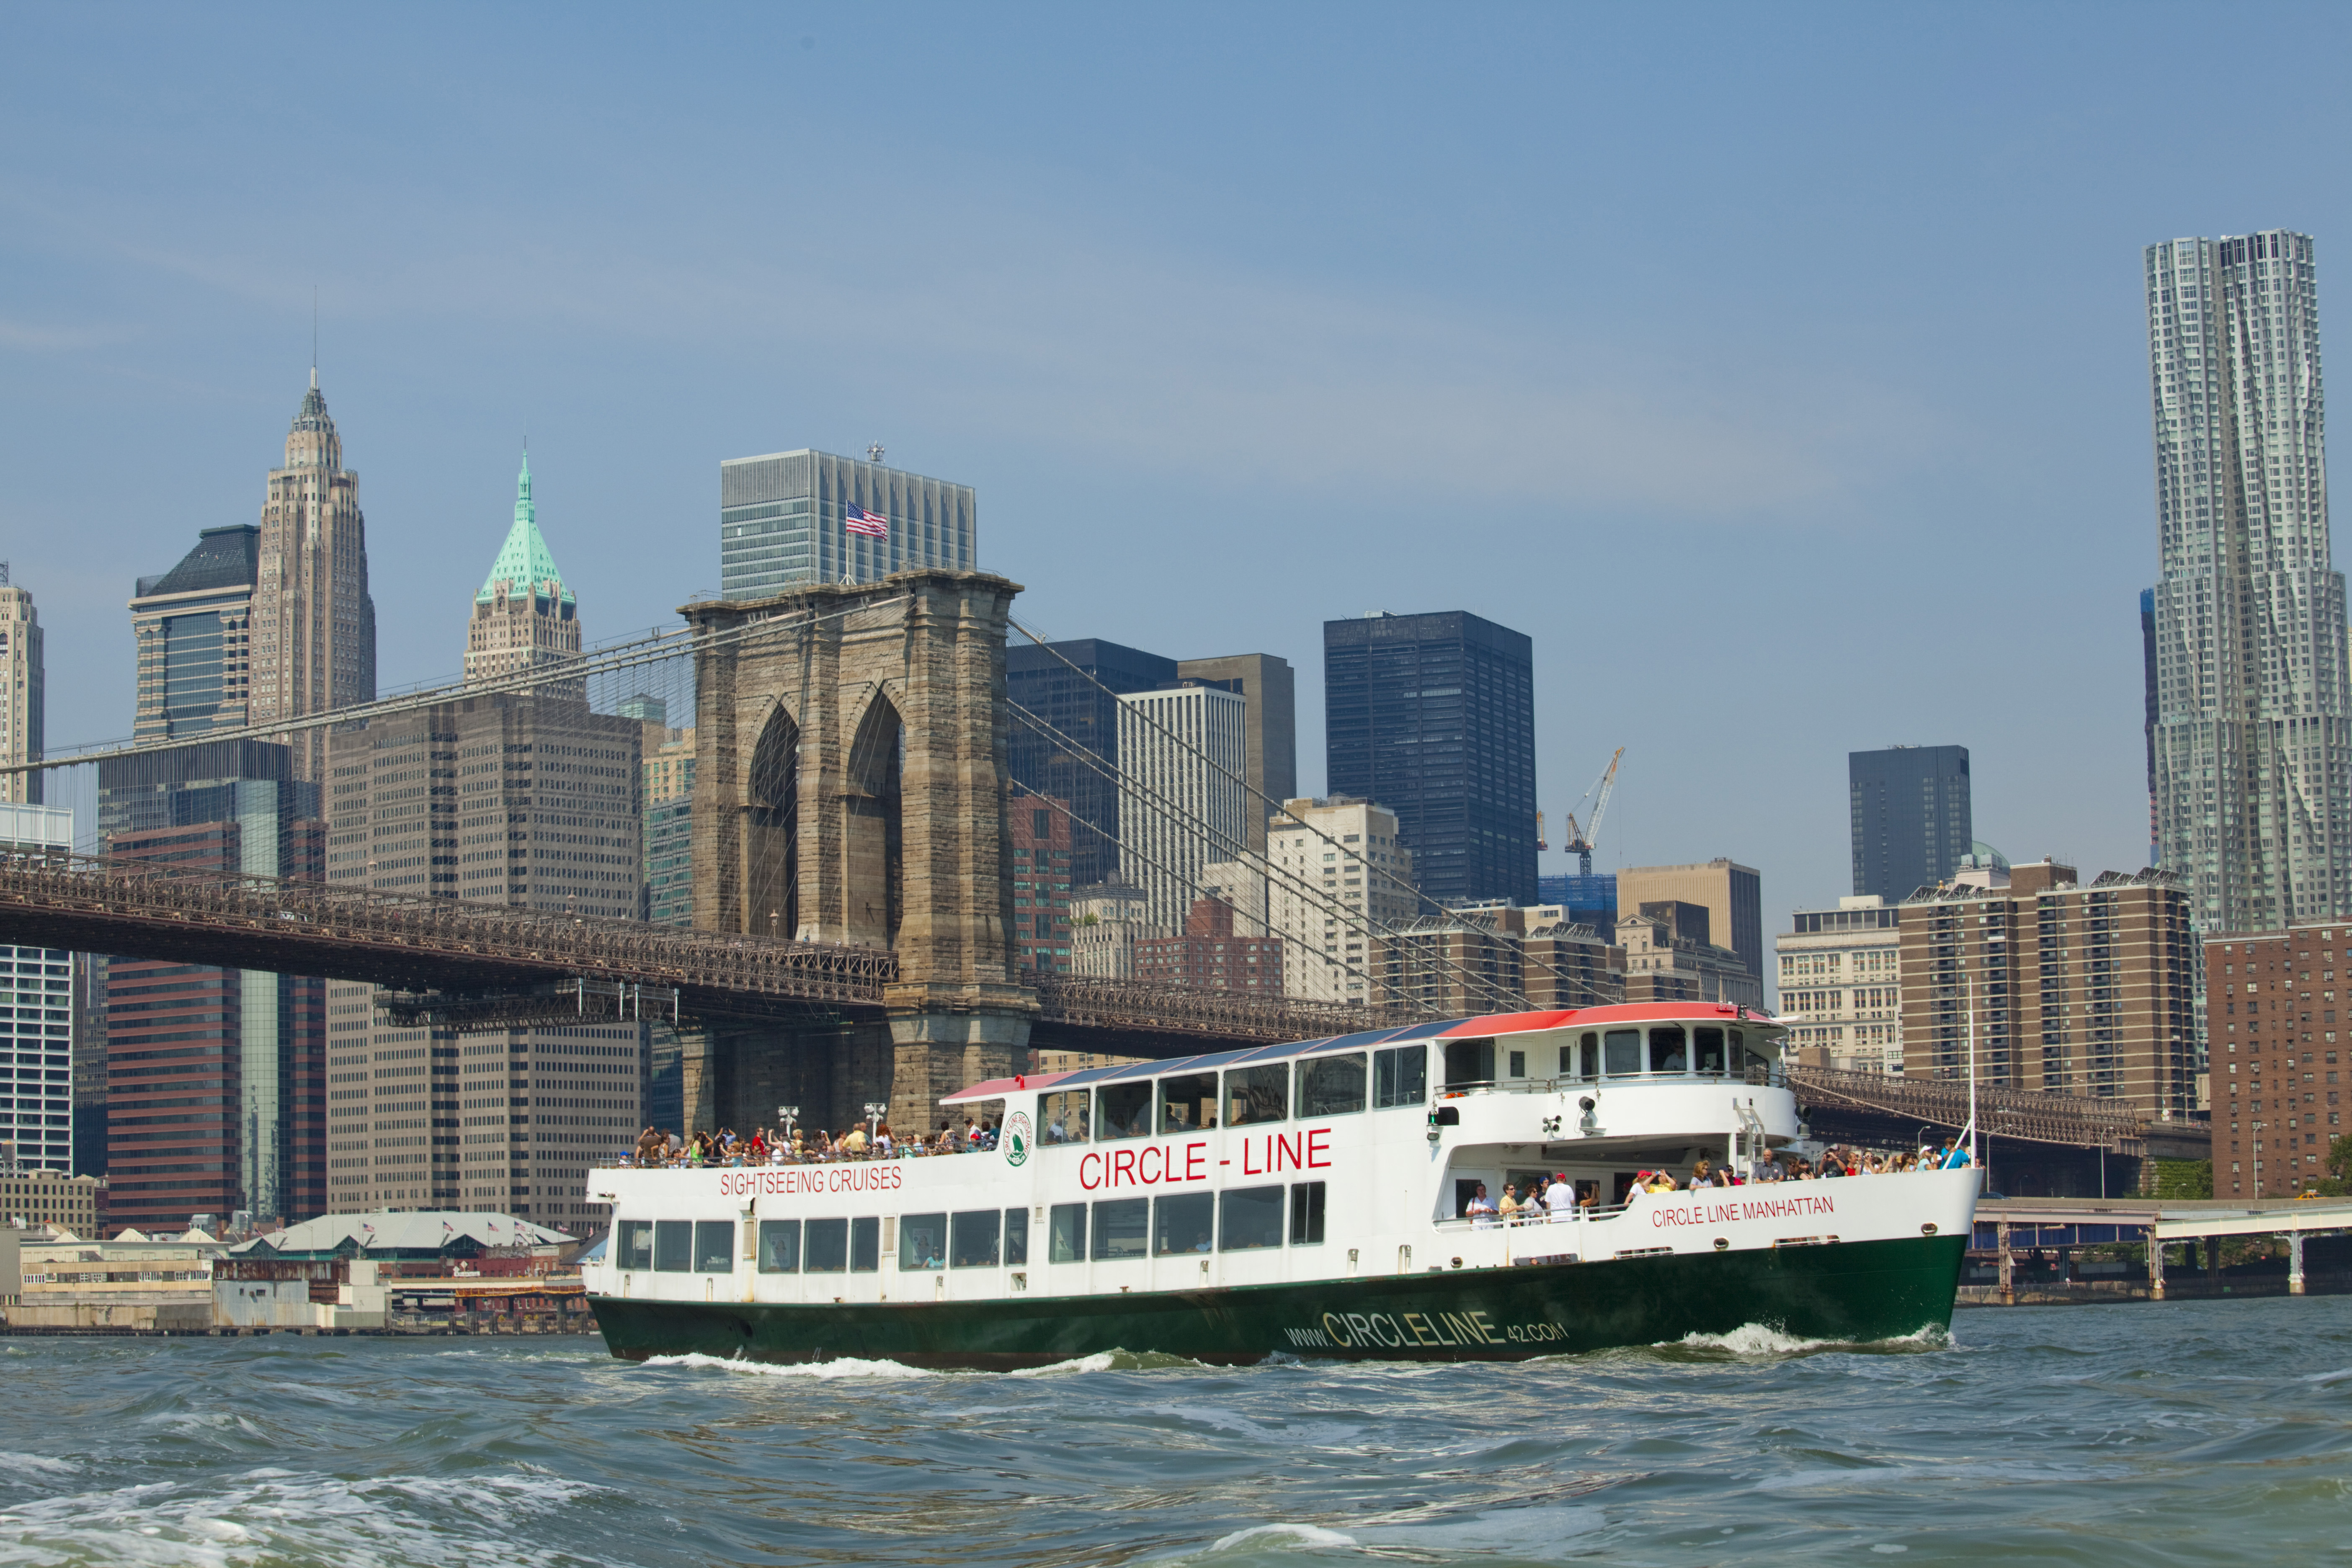 Circle Line boat in NYC, one of the attractions you can visit using a CityPASS